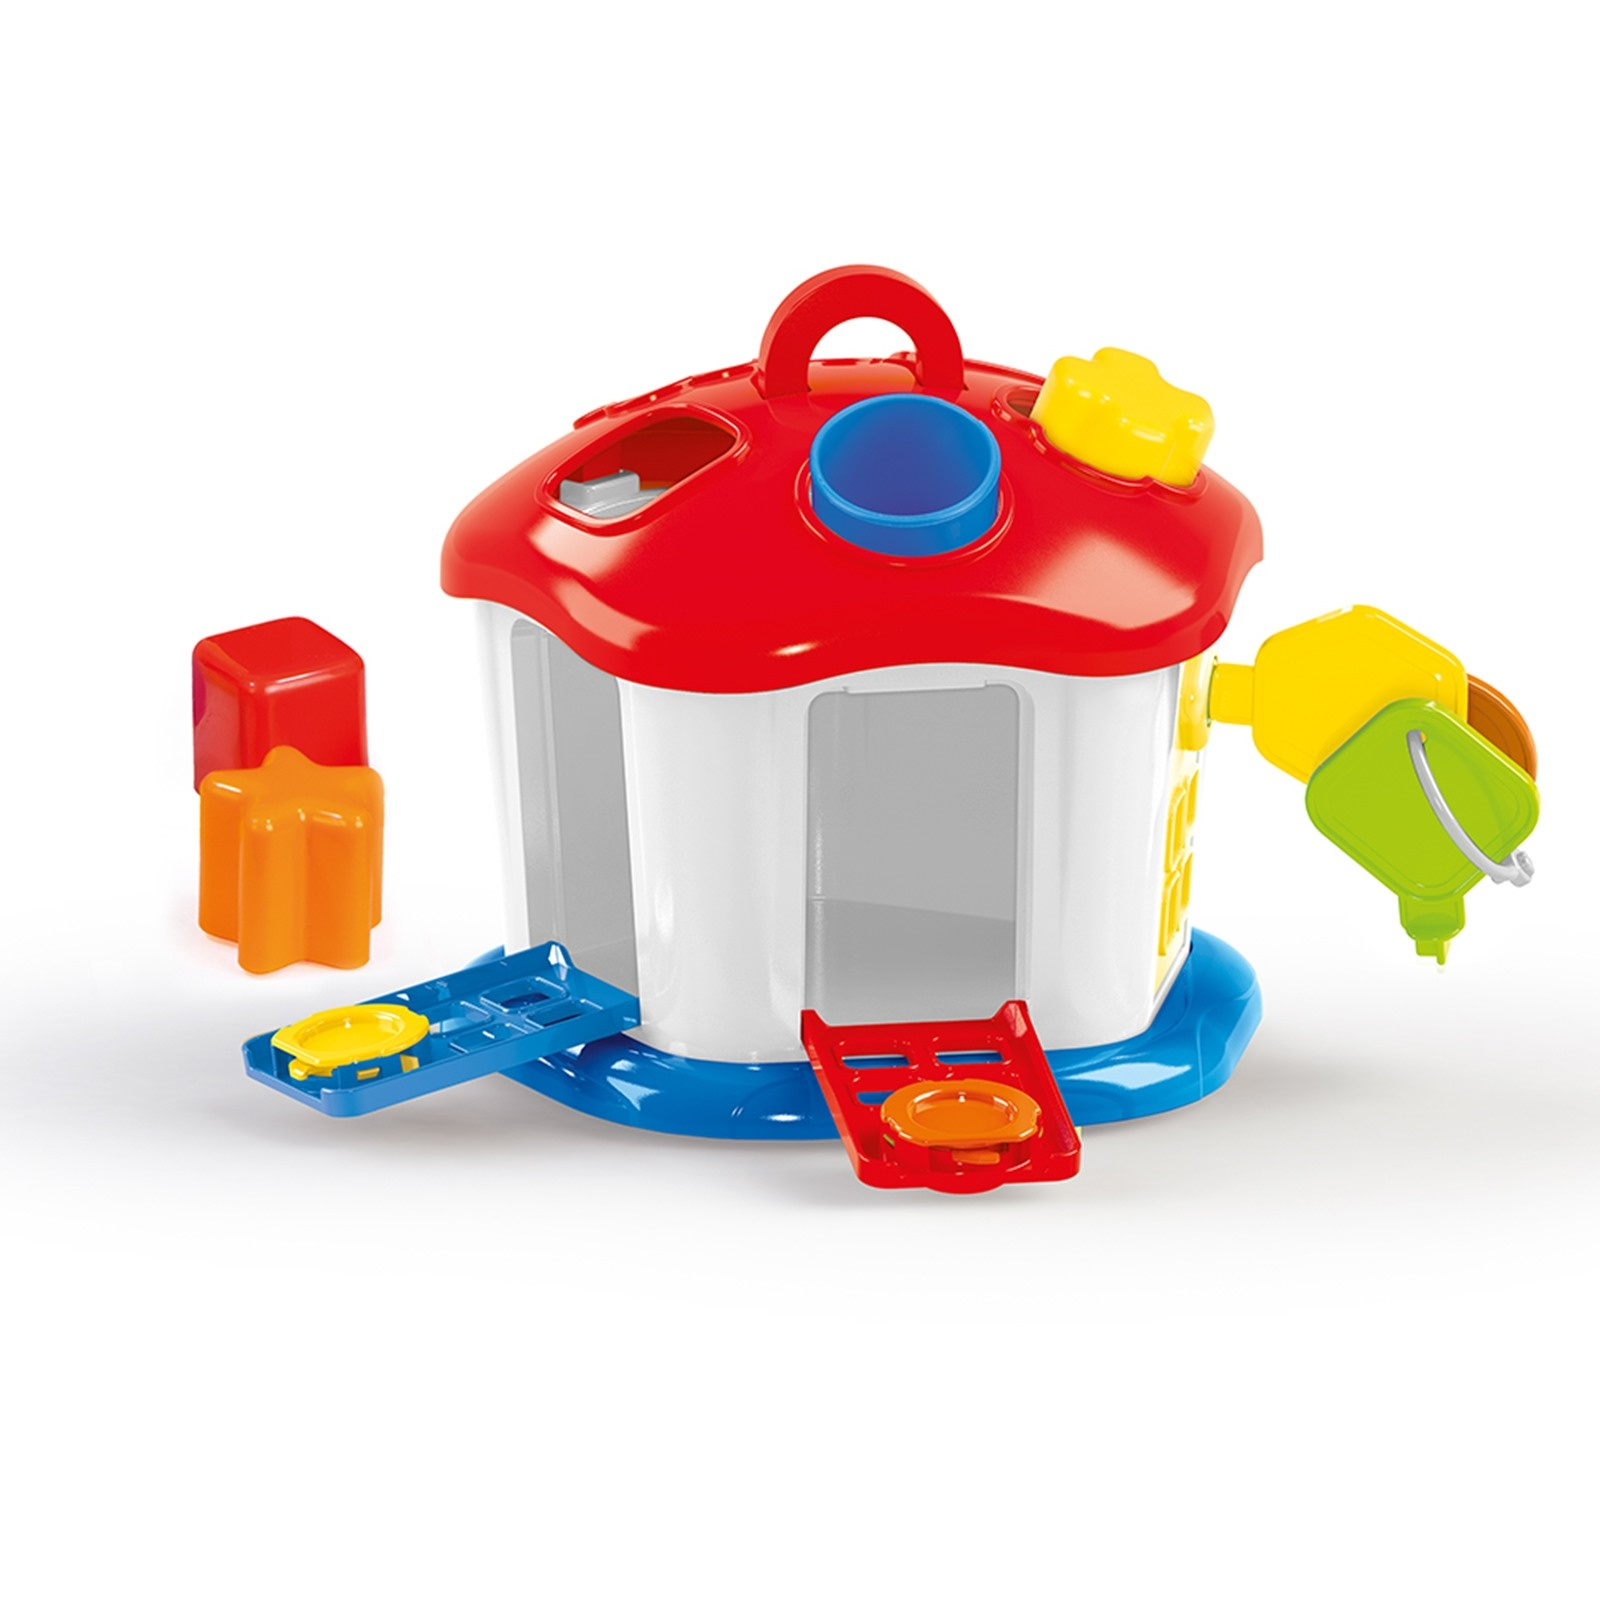 Ebebek Dolu Shape Sorter Sweet House With Lockable Doors 1 Years+